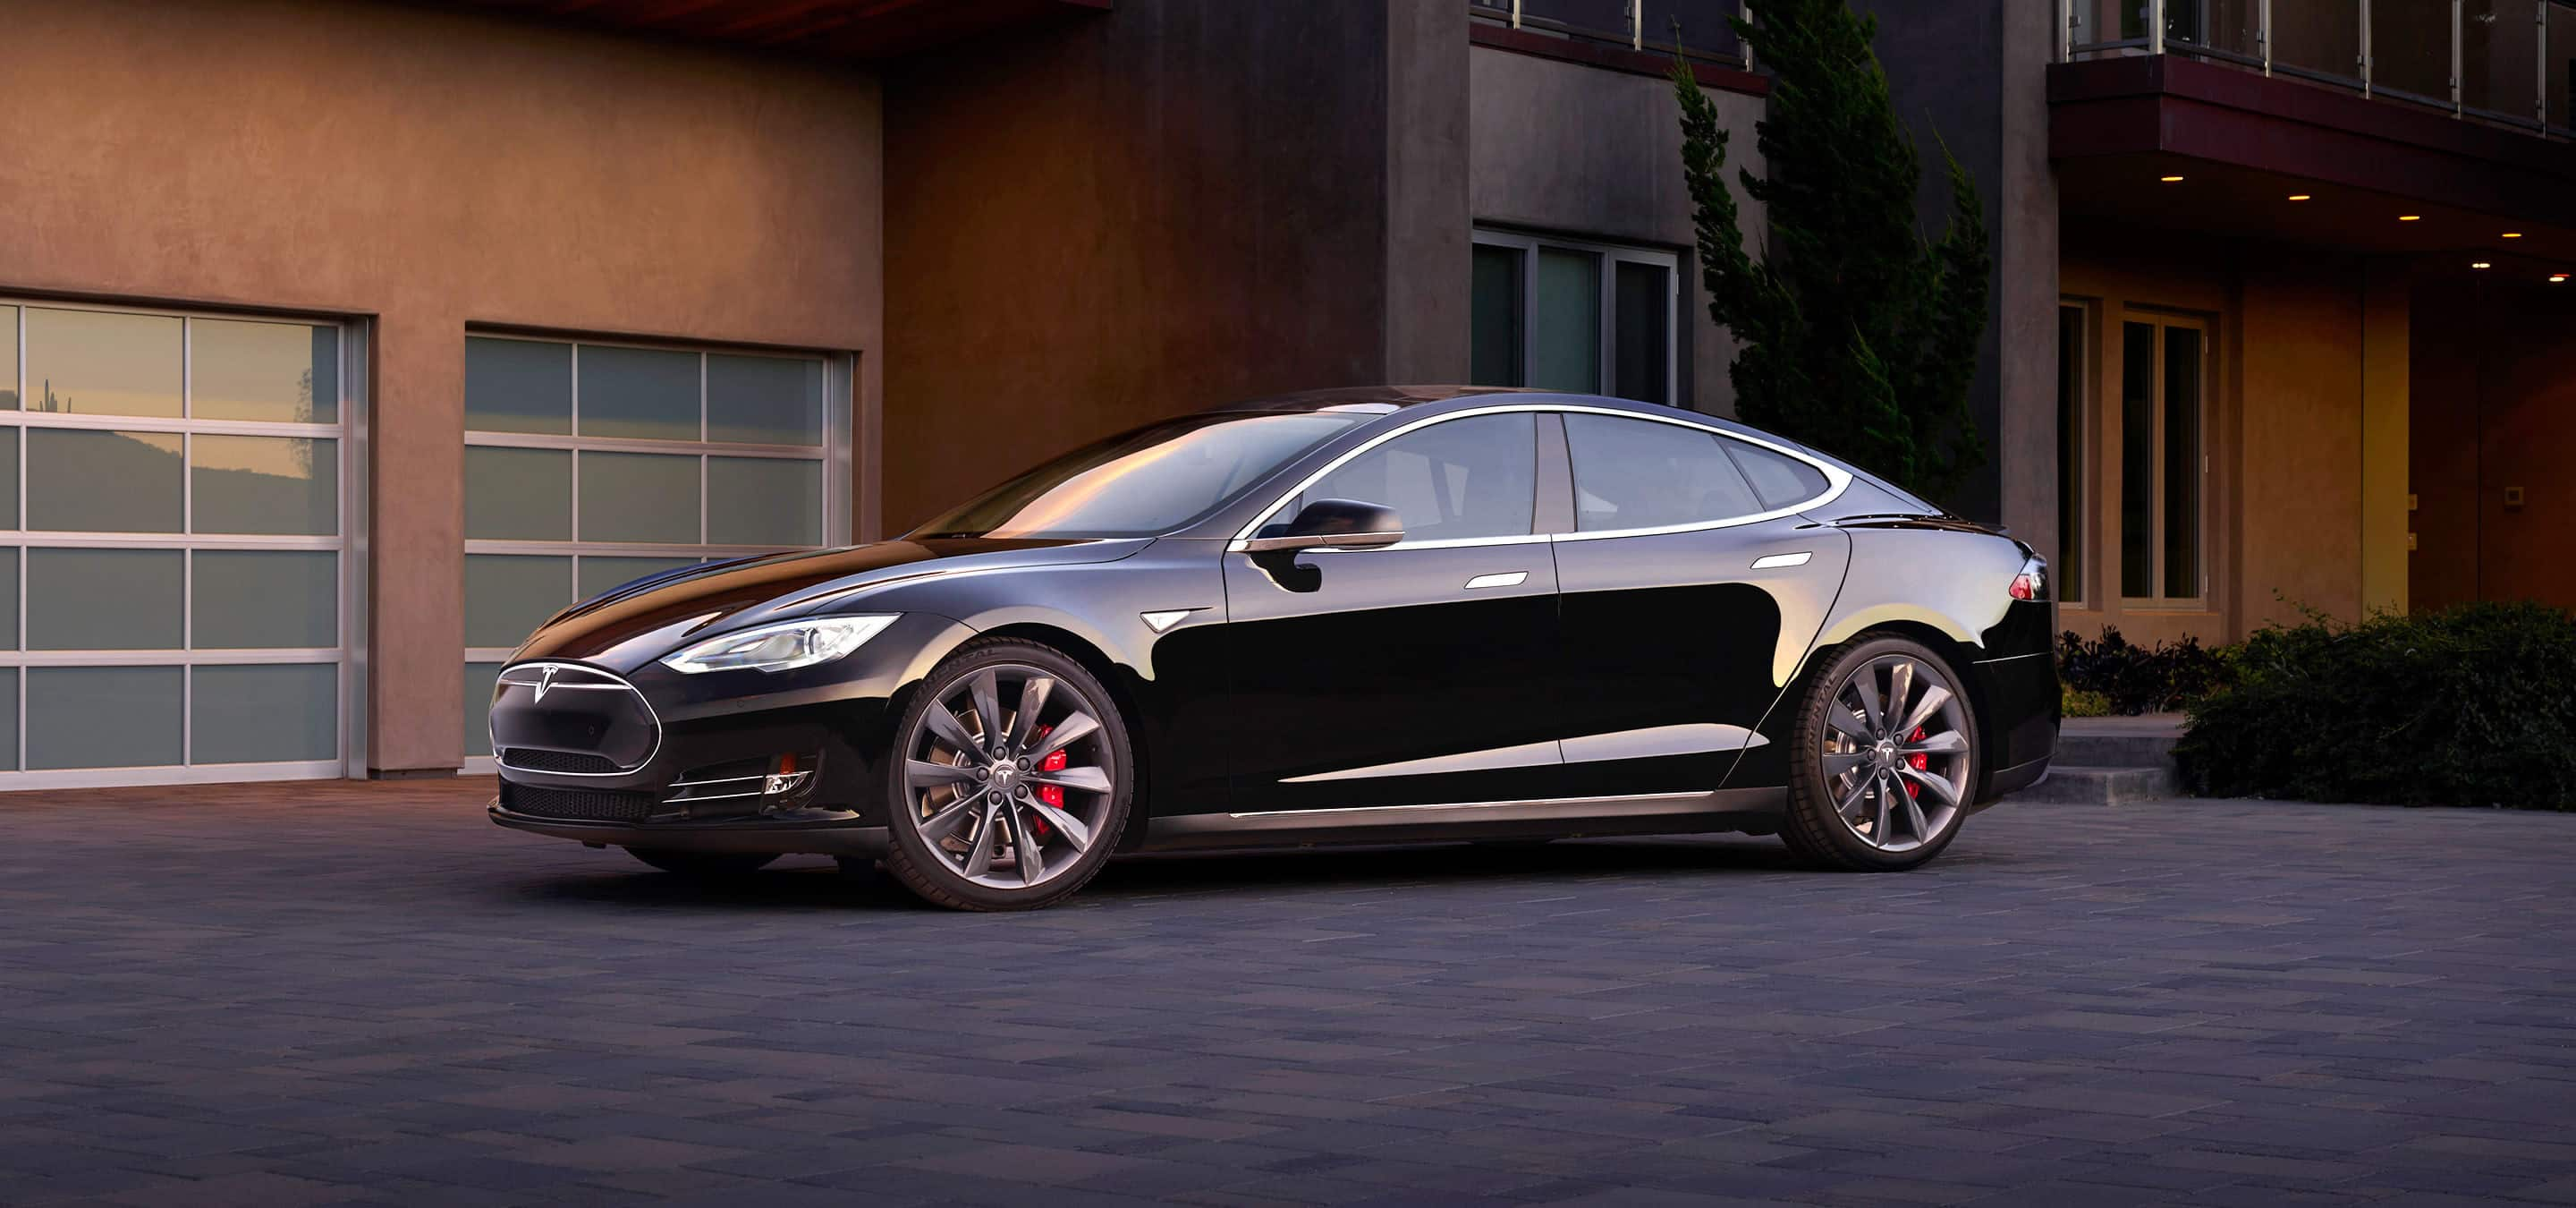 http://www.teslamotors.com/sites/default/files/images/model-s/gallery/exterior/hero-01.jpg?20150407